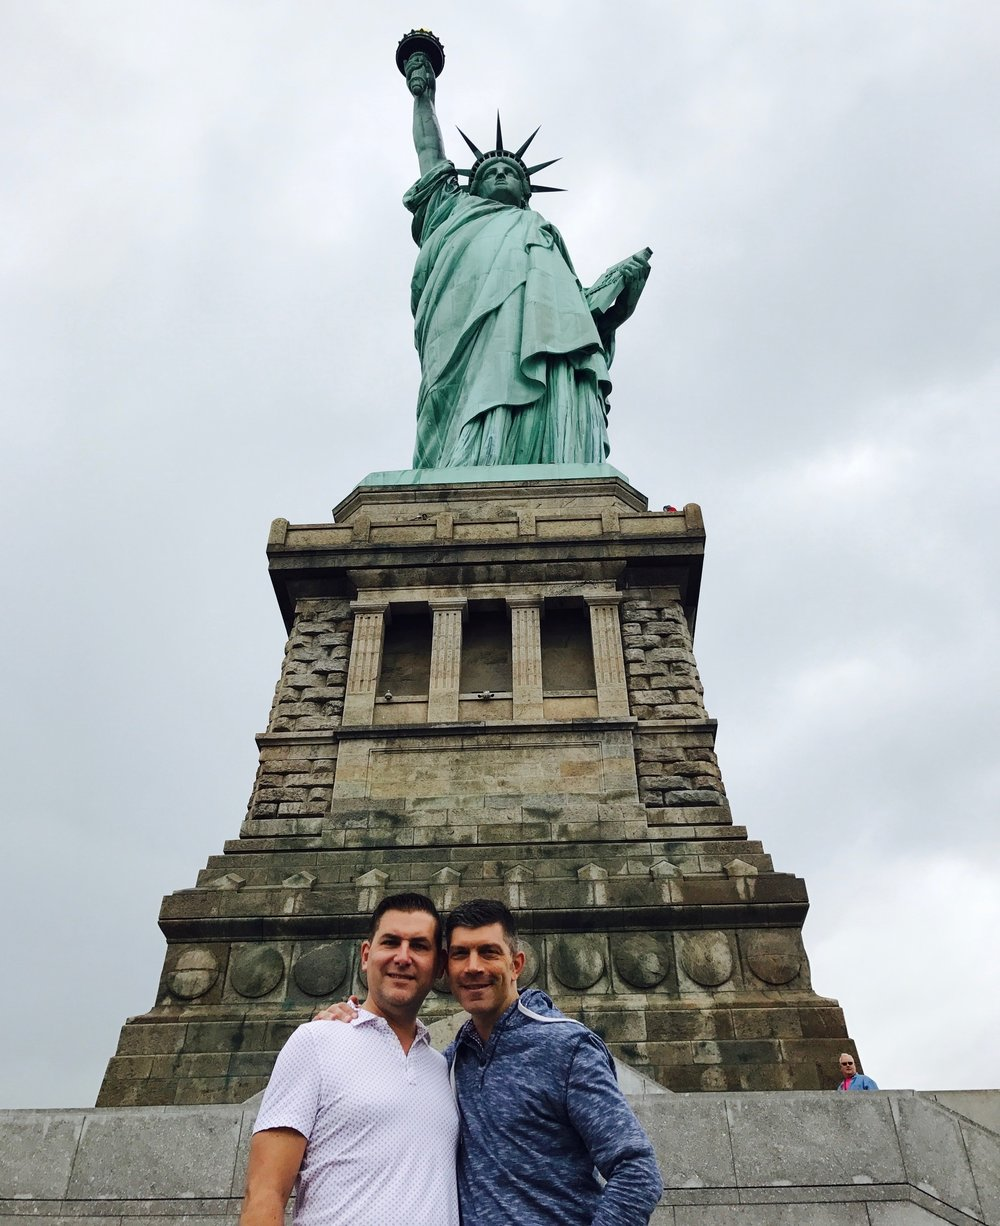 John and I at the base of the Statue of Liberty